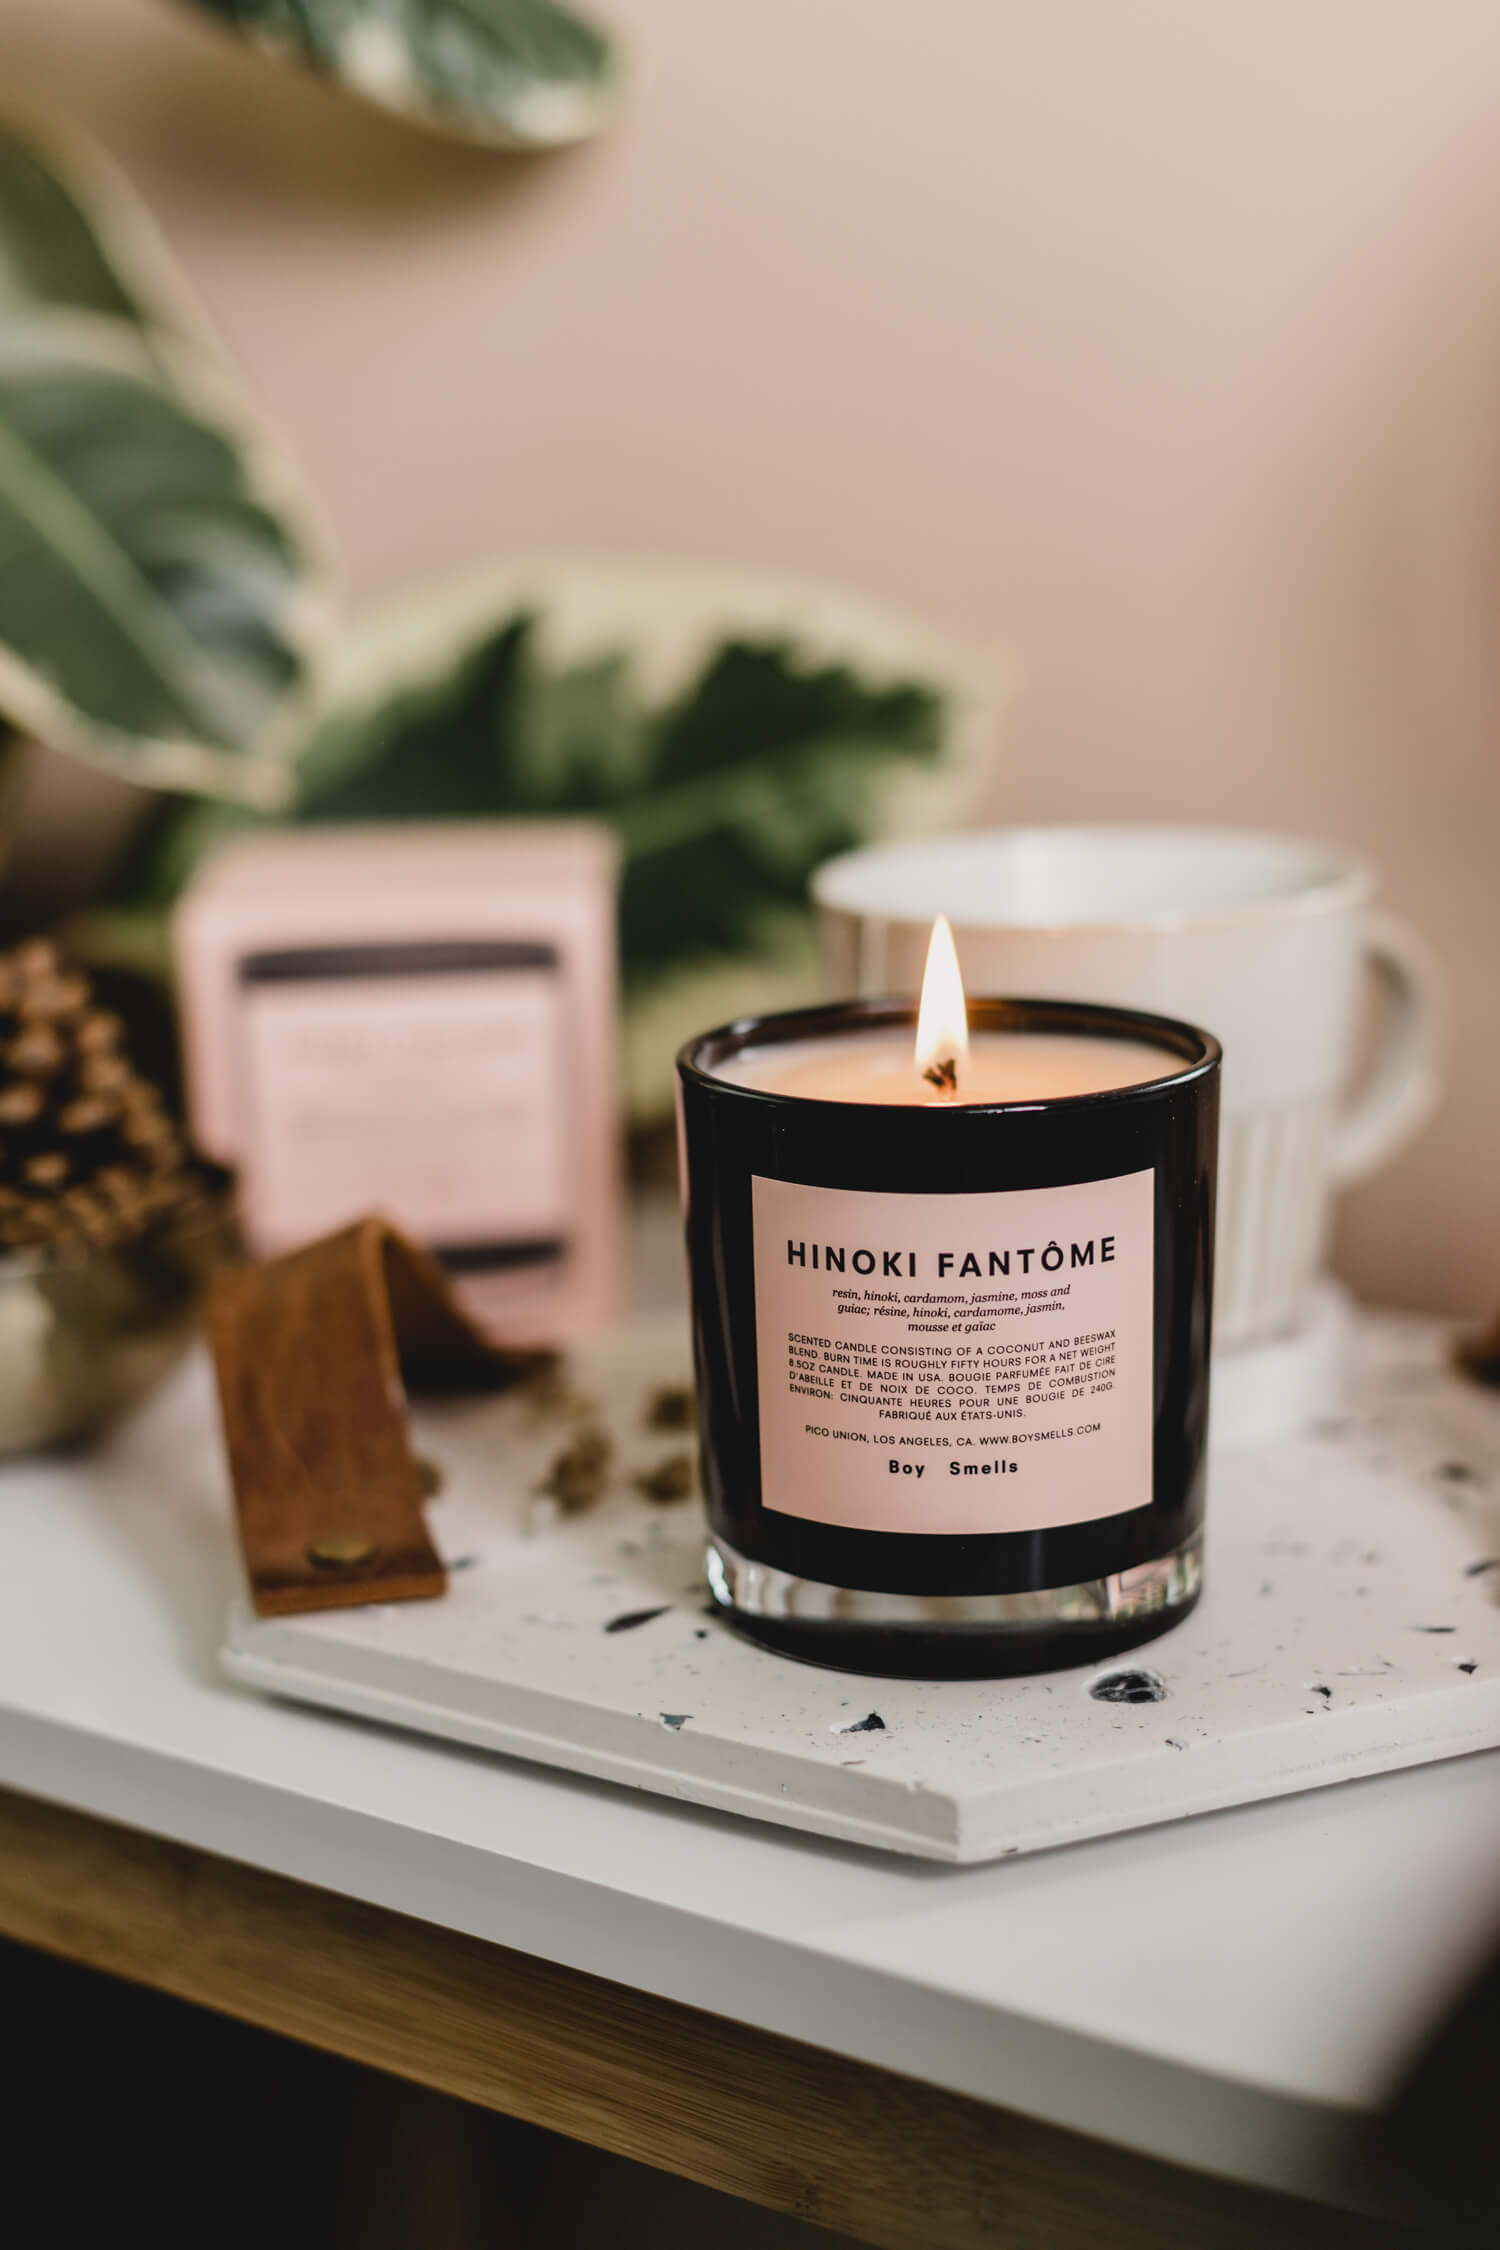 Hinoki Fantome Candle by Boy Smells